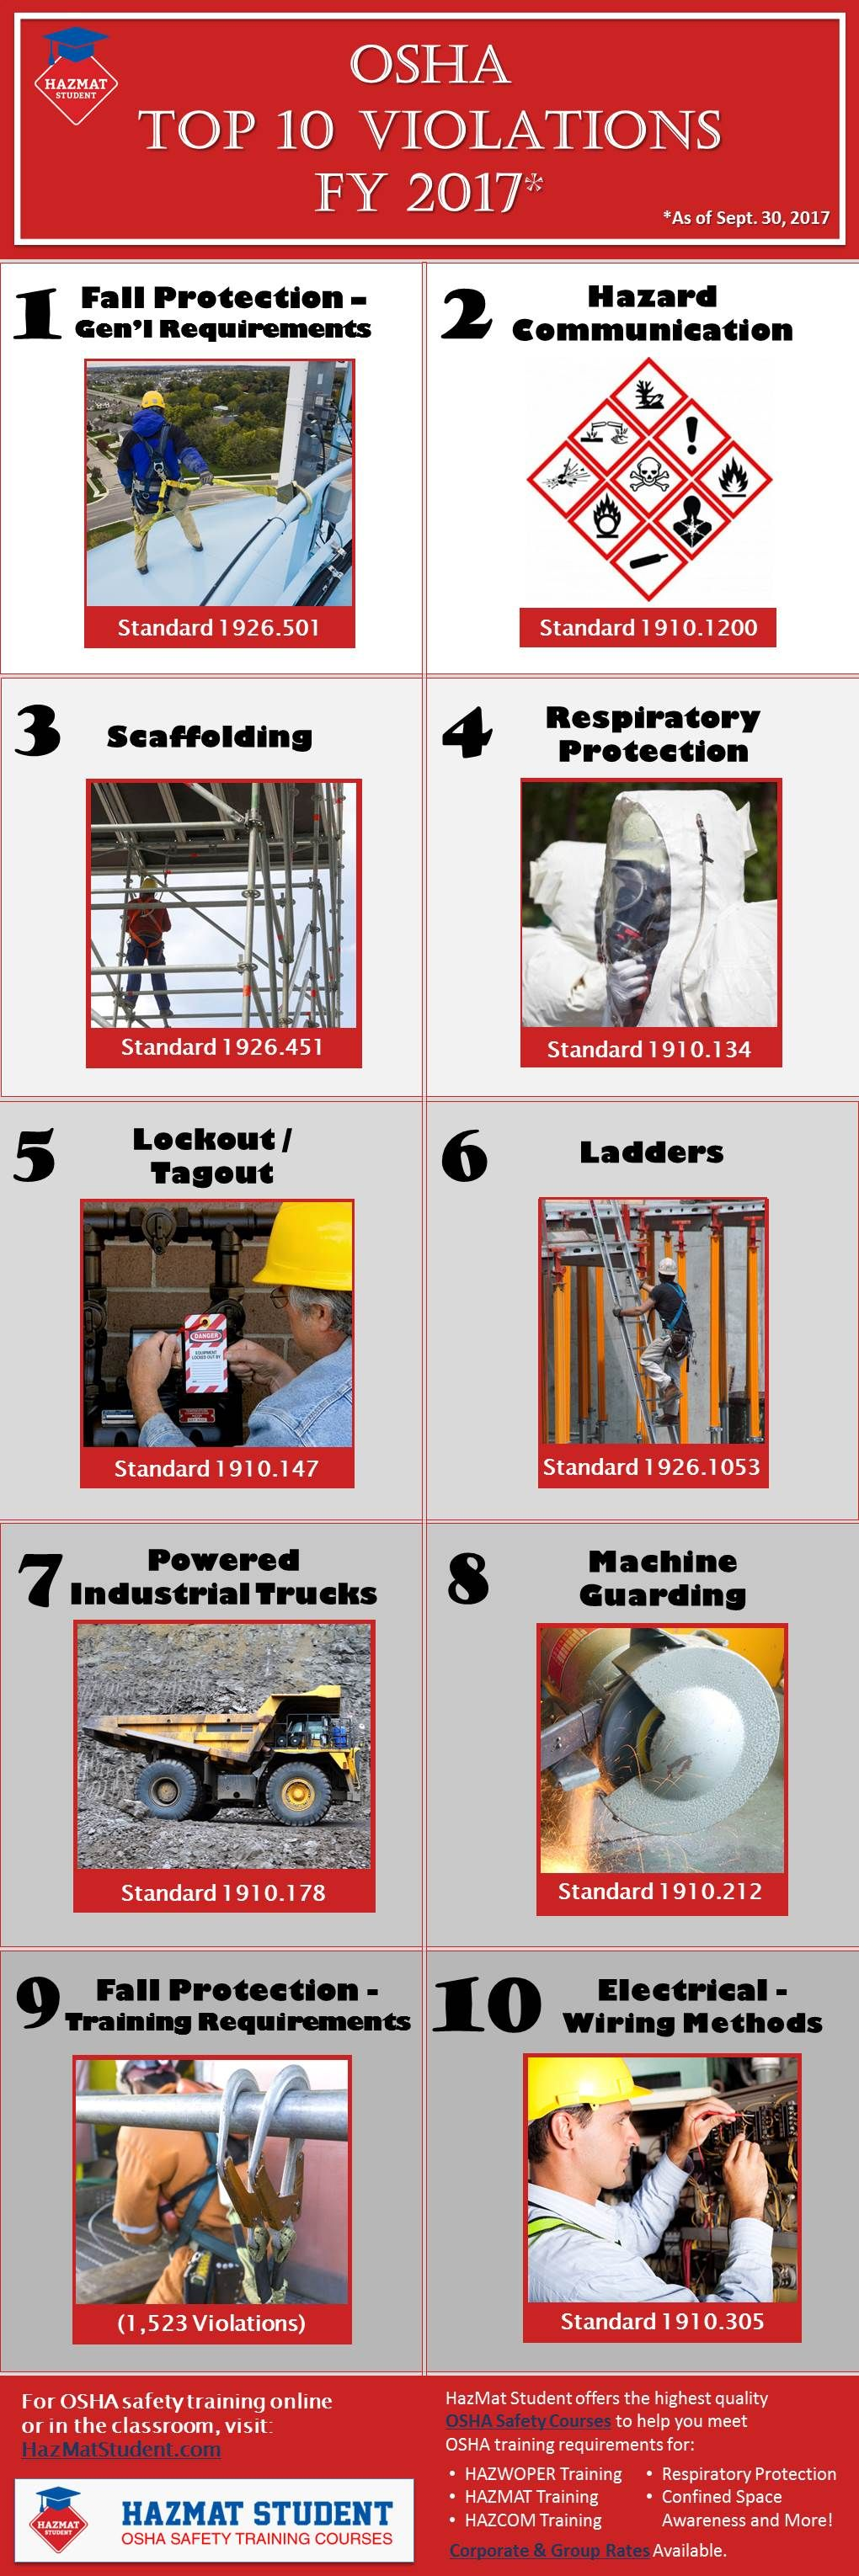 OSHA Top 10 Violations Occupational health and safety